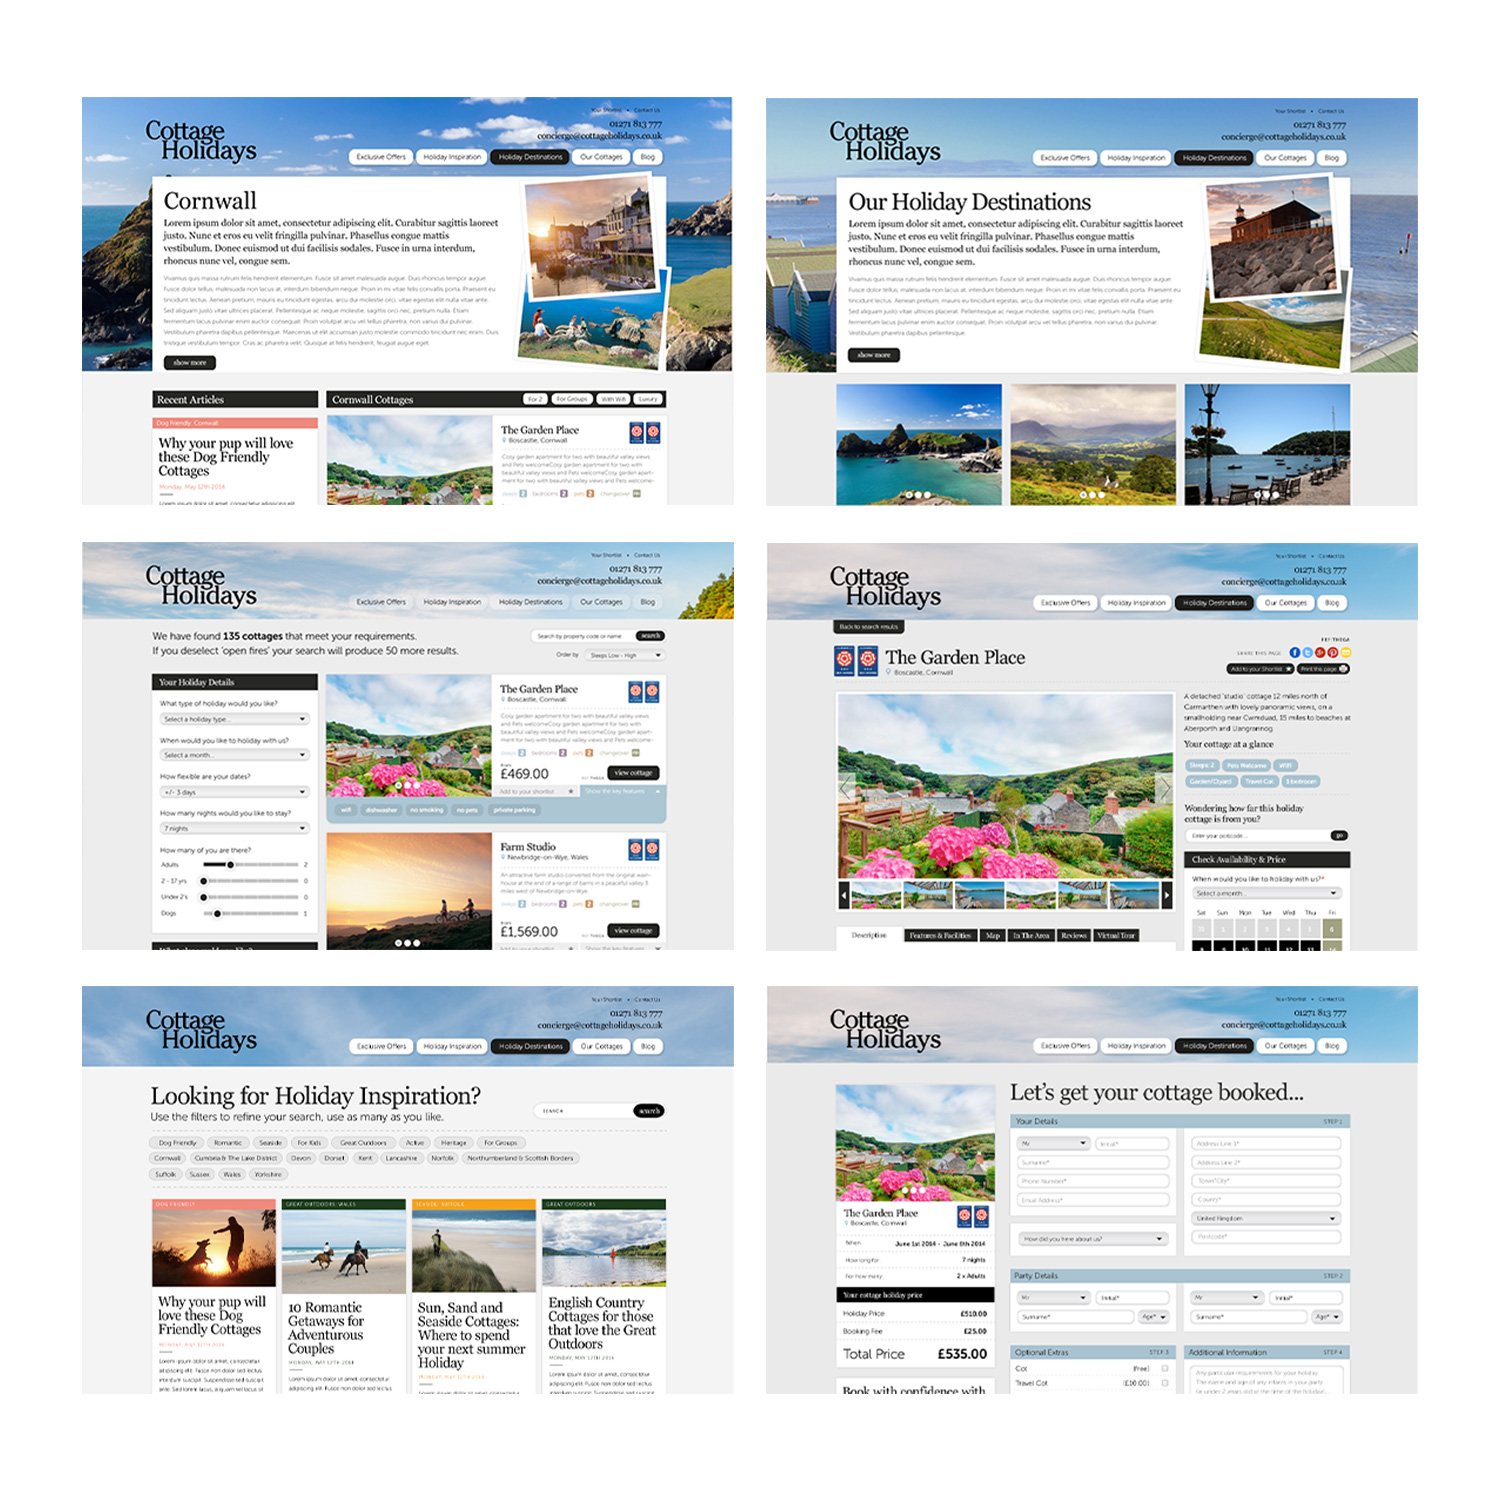 Cottage Holidays desktop site